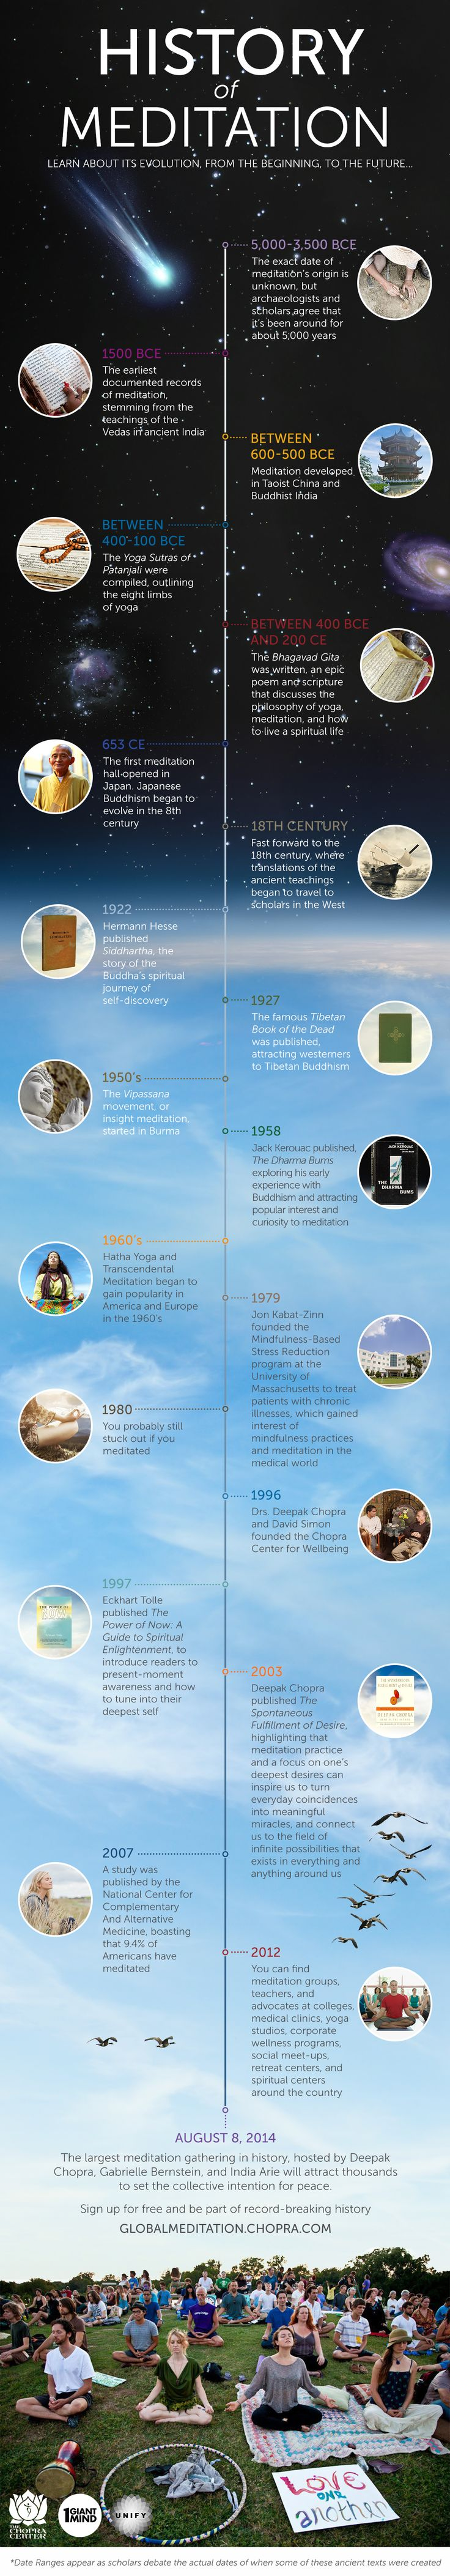 Meditation has been around for thousands of years, in countless forms. Check out this infographic for a visual timeline of the evolution of meditation, from the beginning, and where its future is headed.